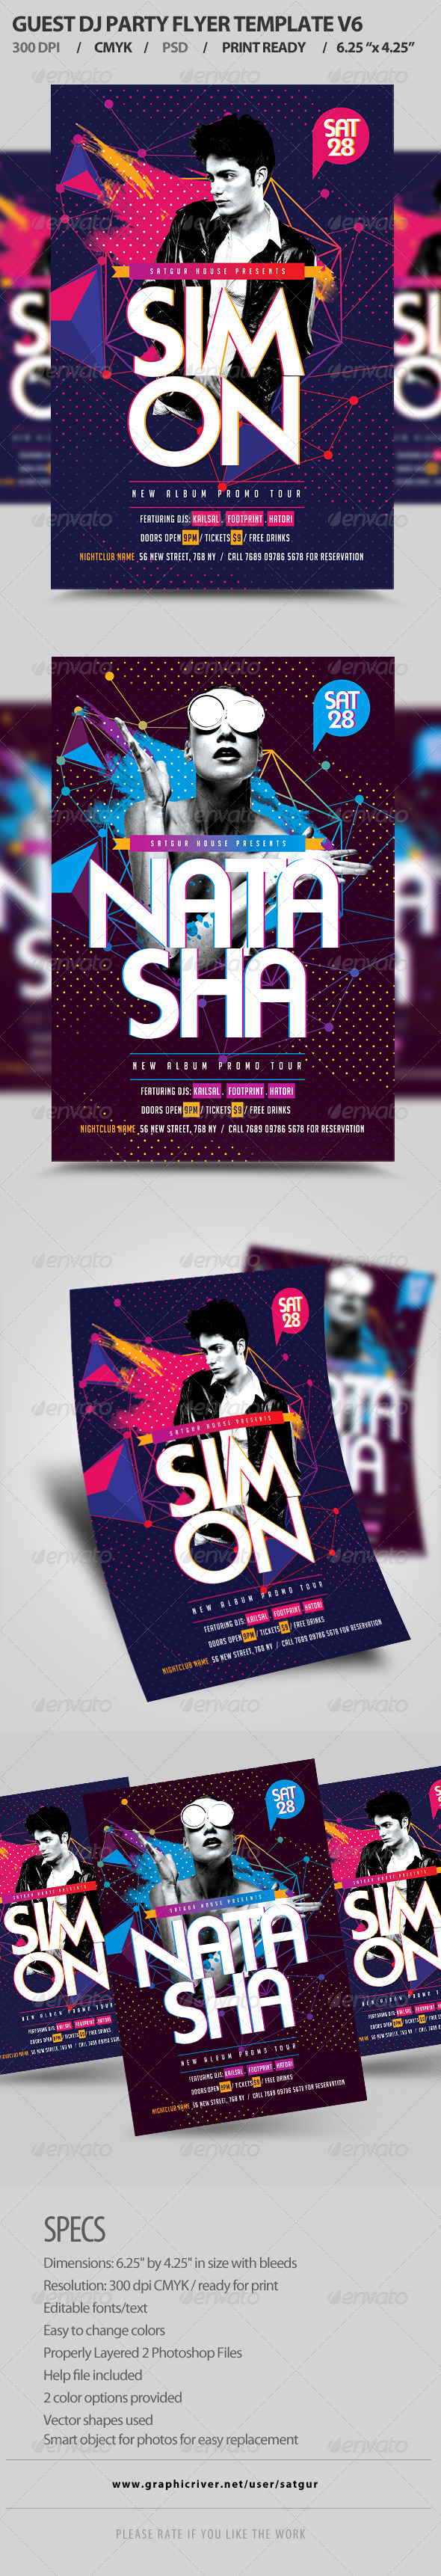 GraphicRiver Guest DJ Party Flyer Template PSD V6 8415564